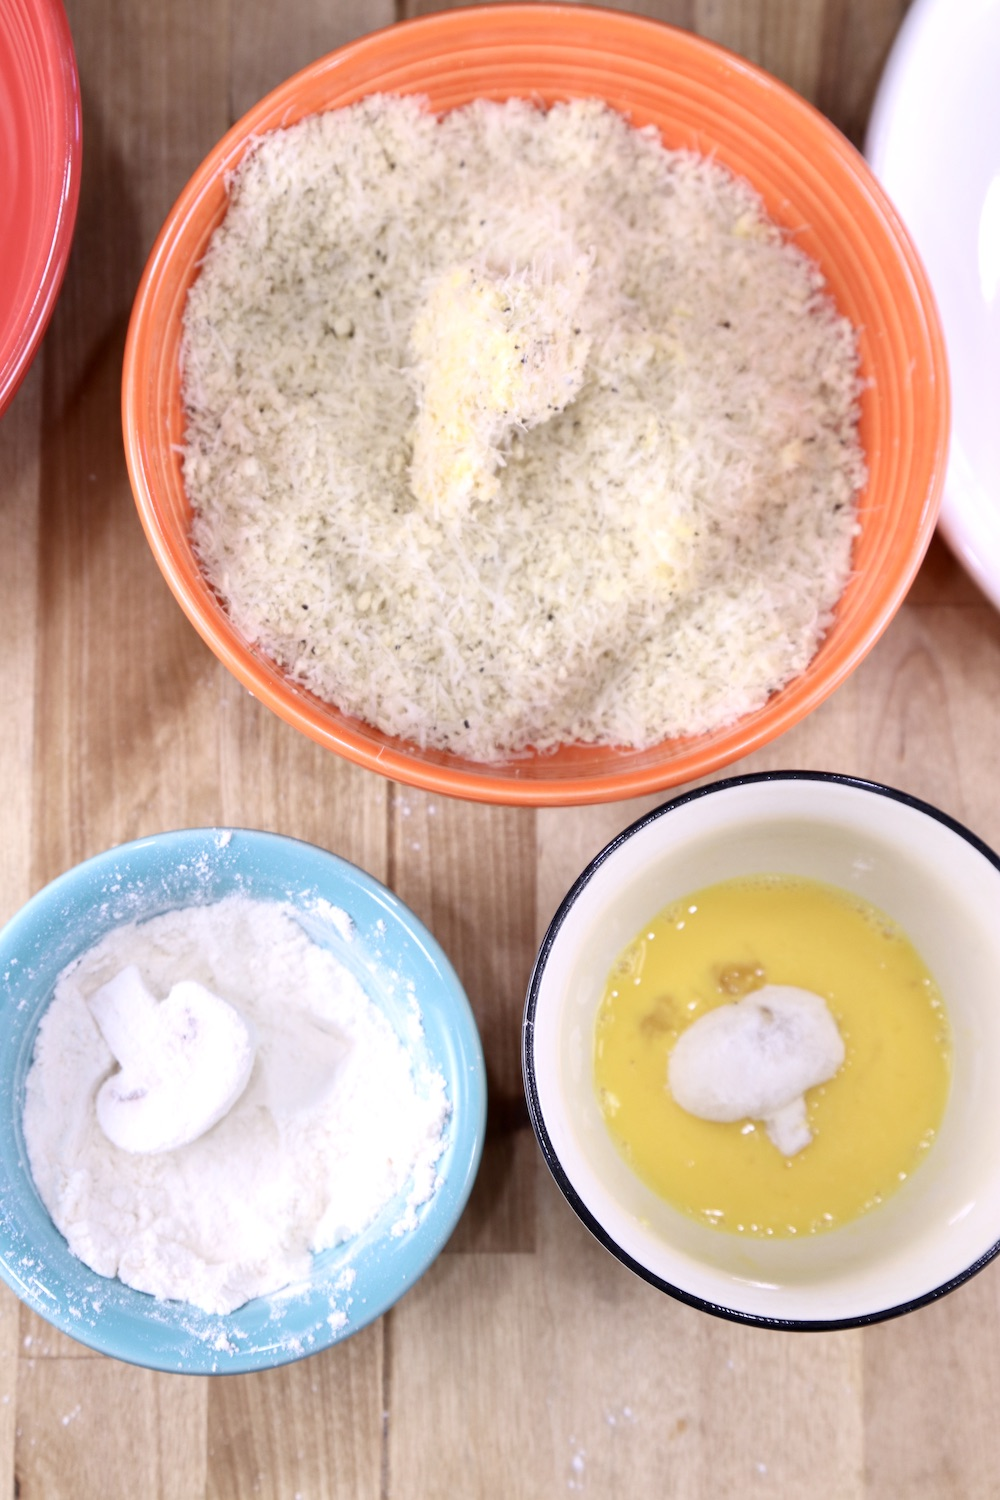 Bowls for breading mushrooms with flour, egg, and panko bread crumb mixture, mushroom in each